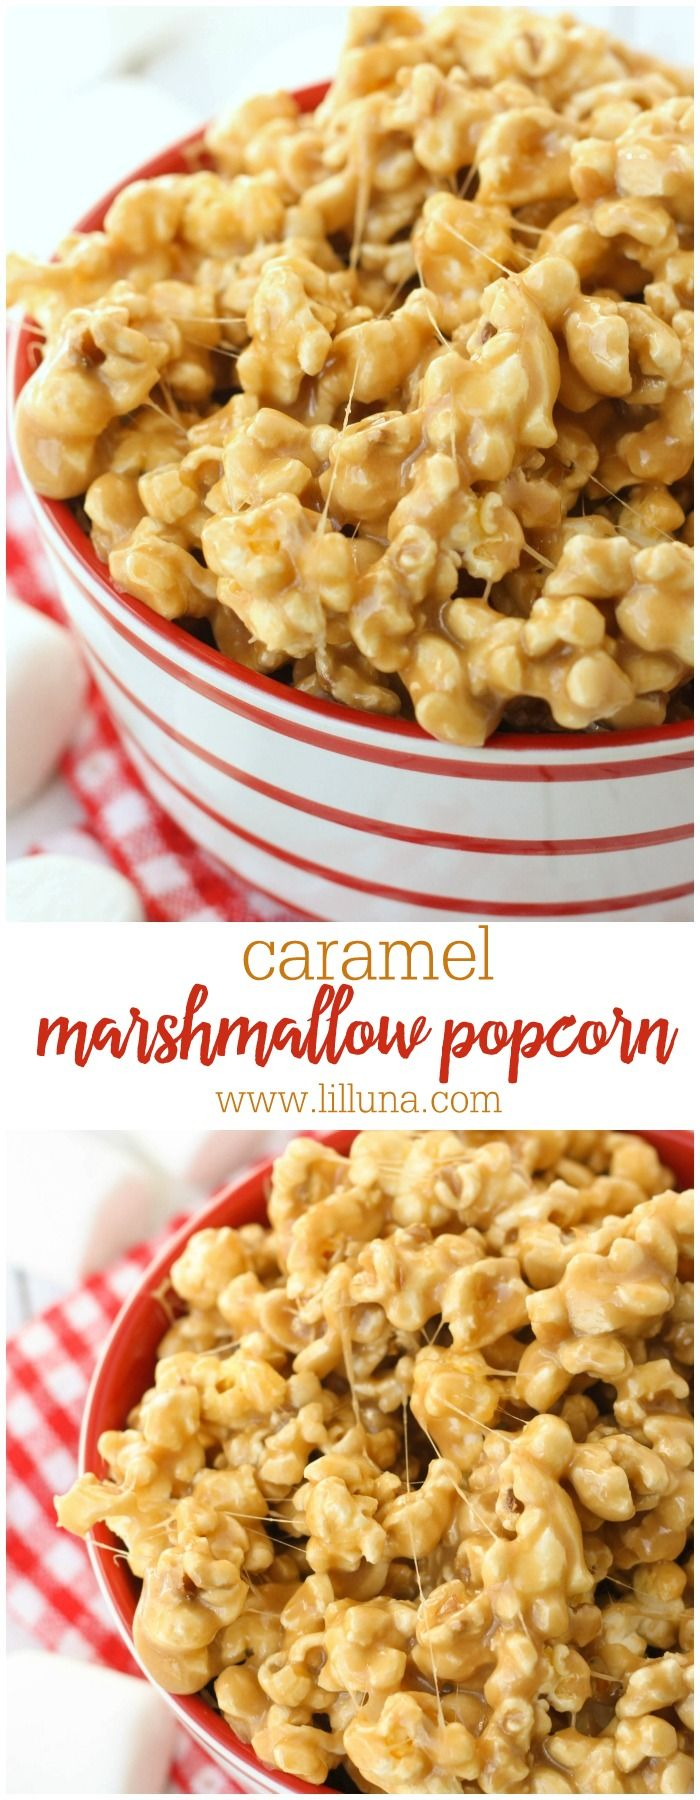 5-Minute Caramel Marshmallow Popcorn recipe - SOOO good and gooey!